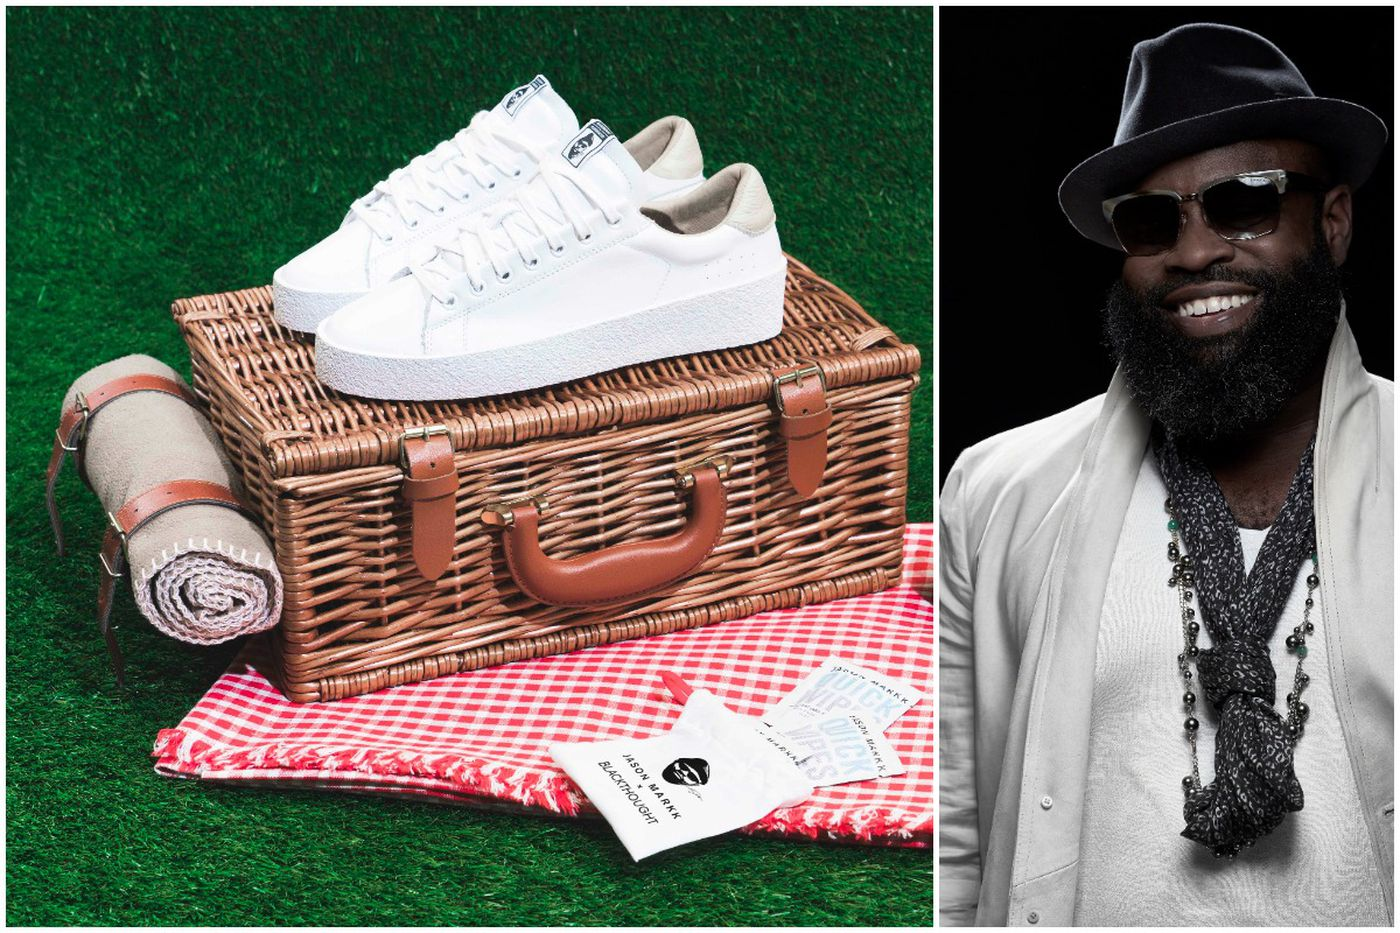 Black Thought launches sneaker collab, talks style